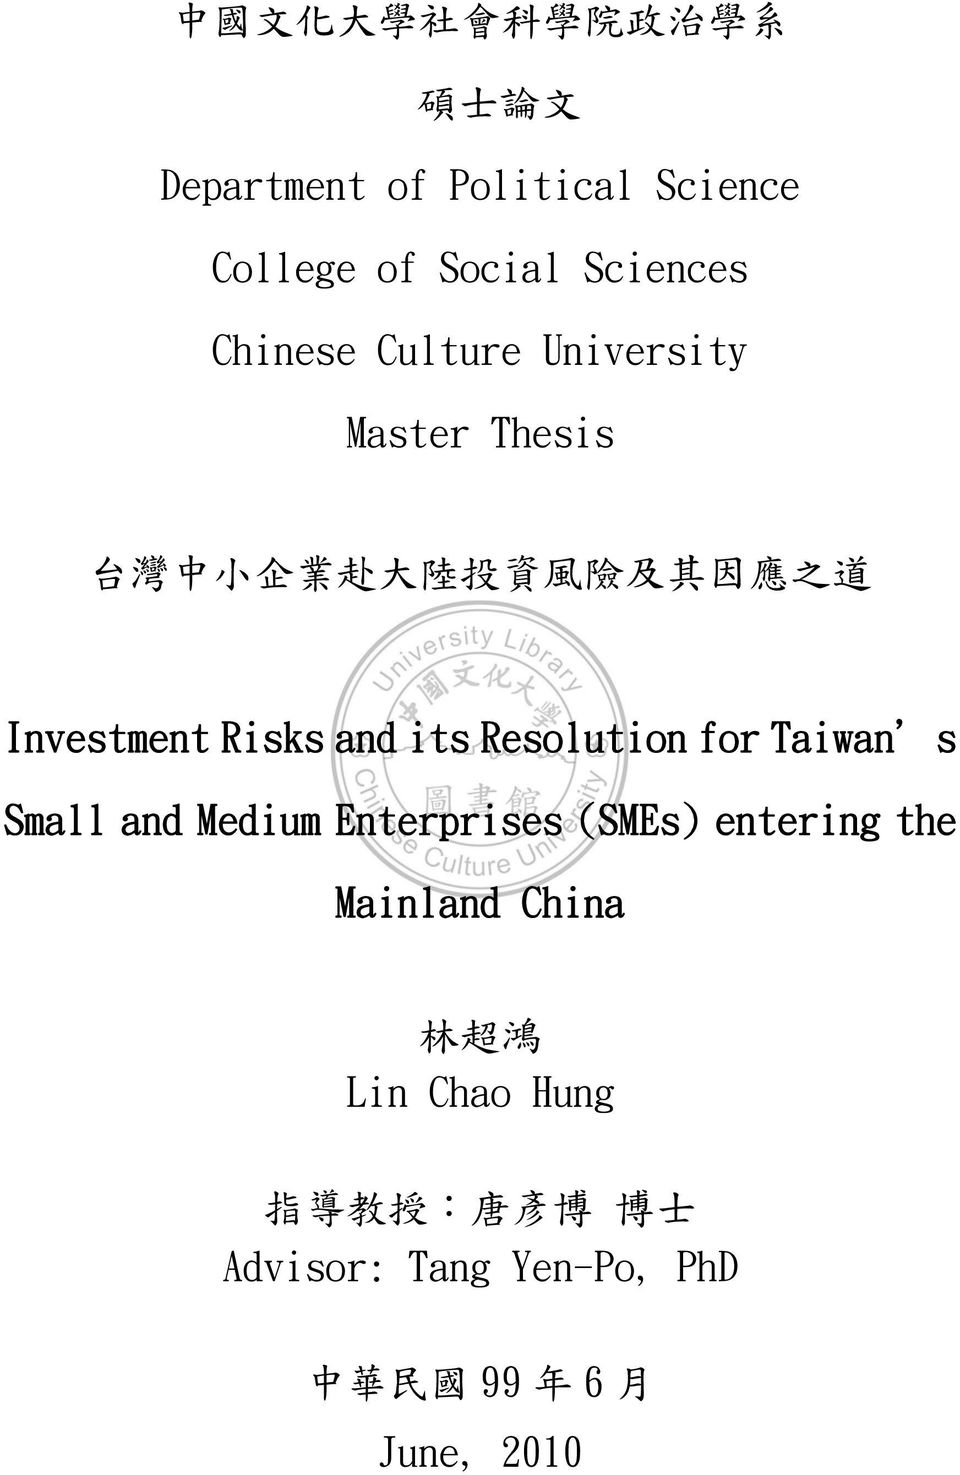 Investment Risks and its Resolution for Taiwan's Small and Medium Enterprises (SMEs) entering